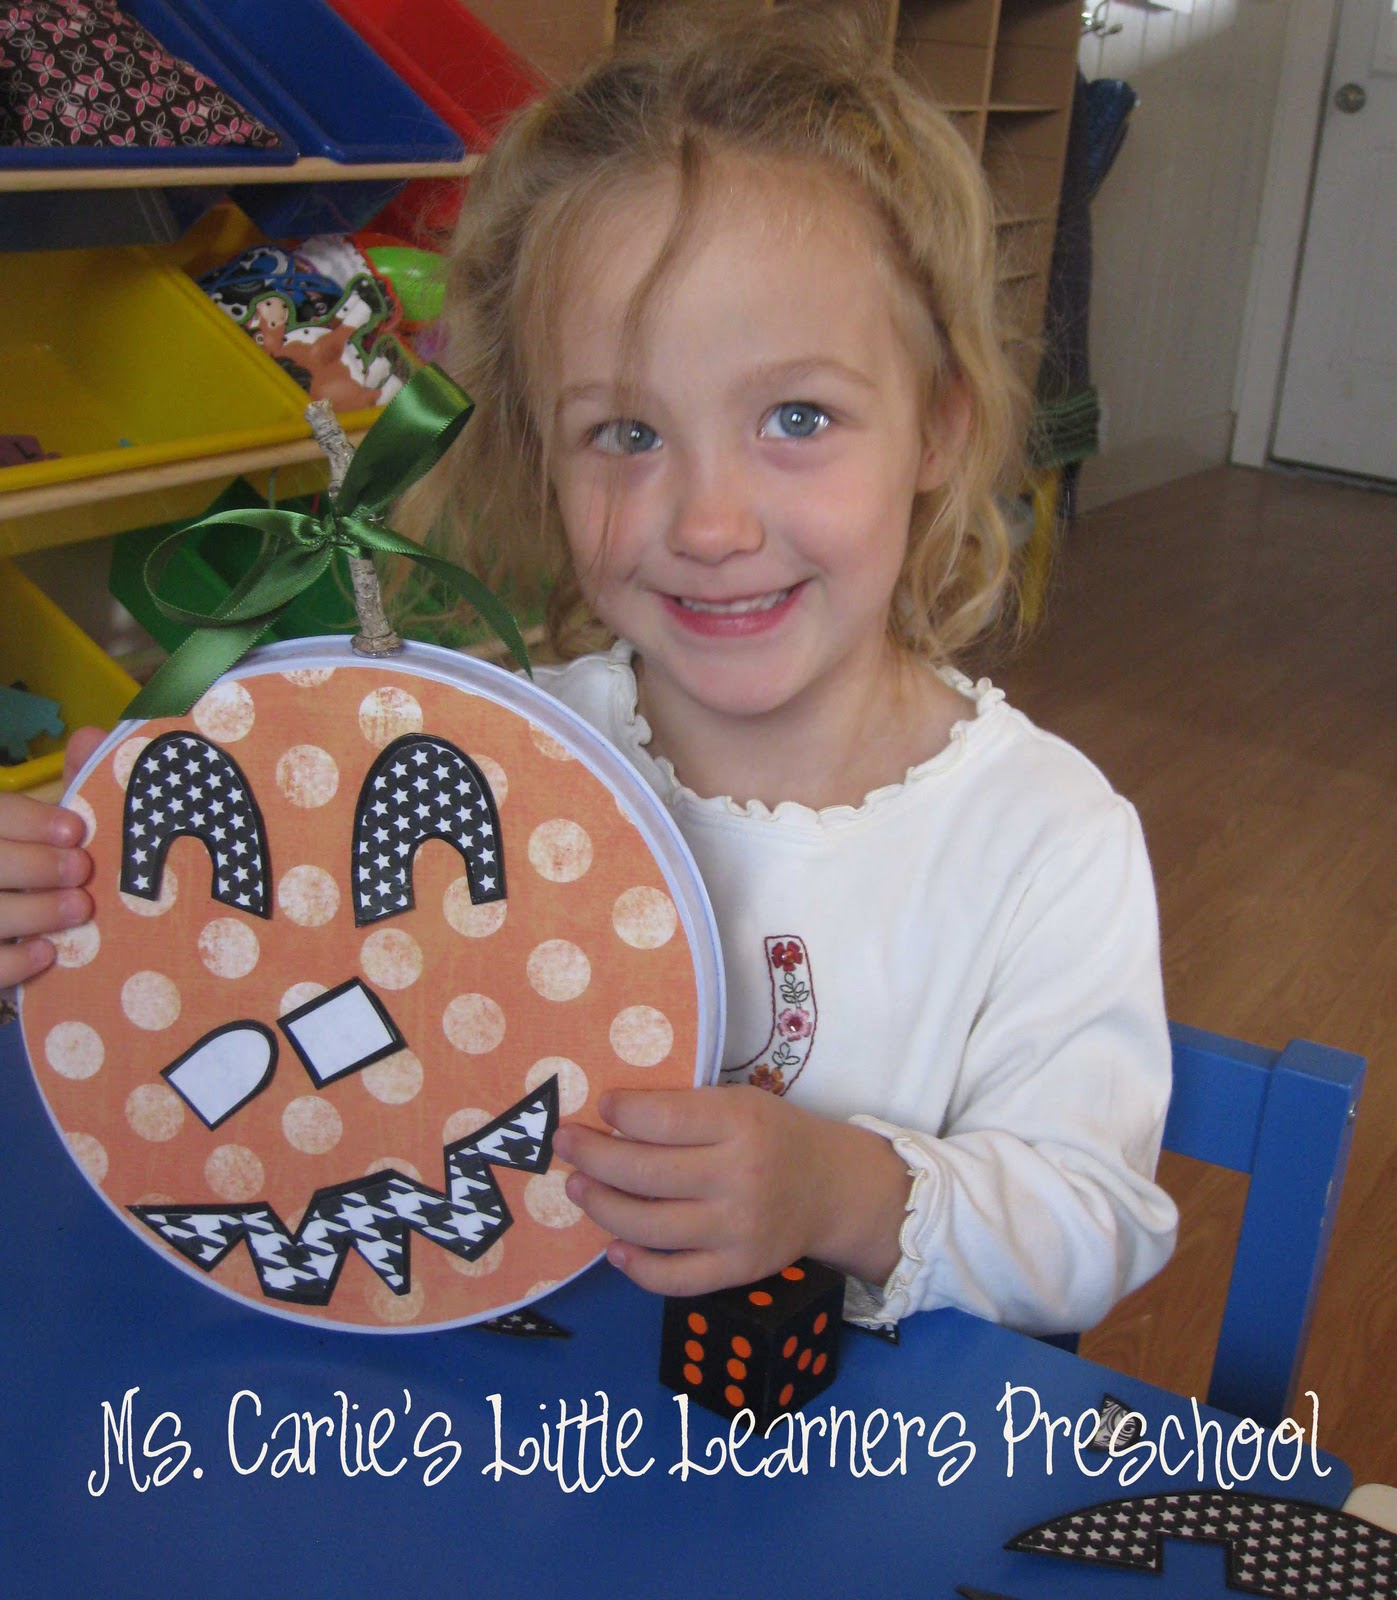 Ms Carlie S Little Learners Preschool Halloween Activity Roll A Jack O Lantern